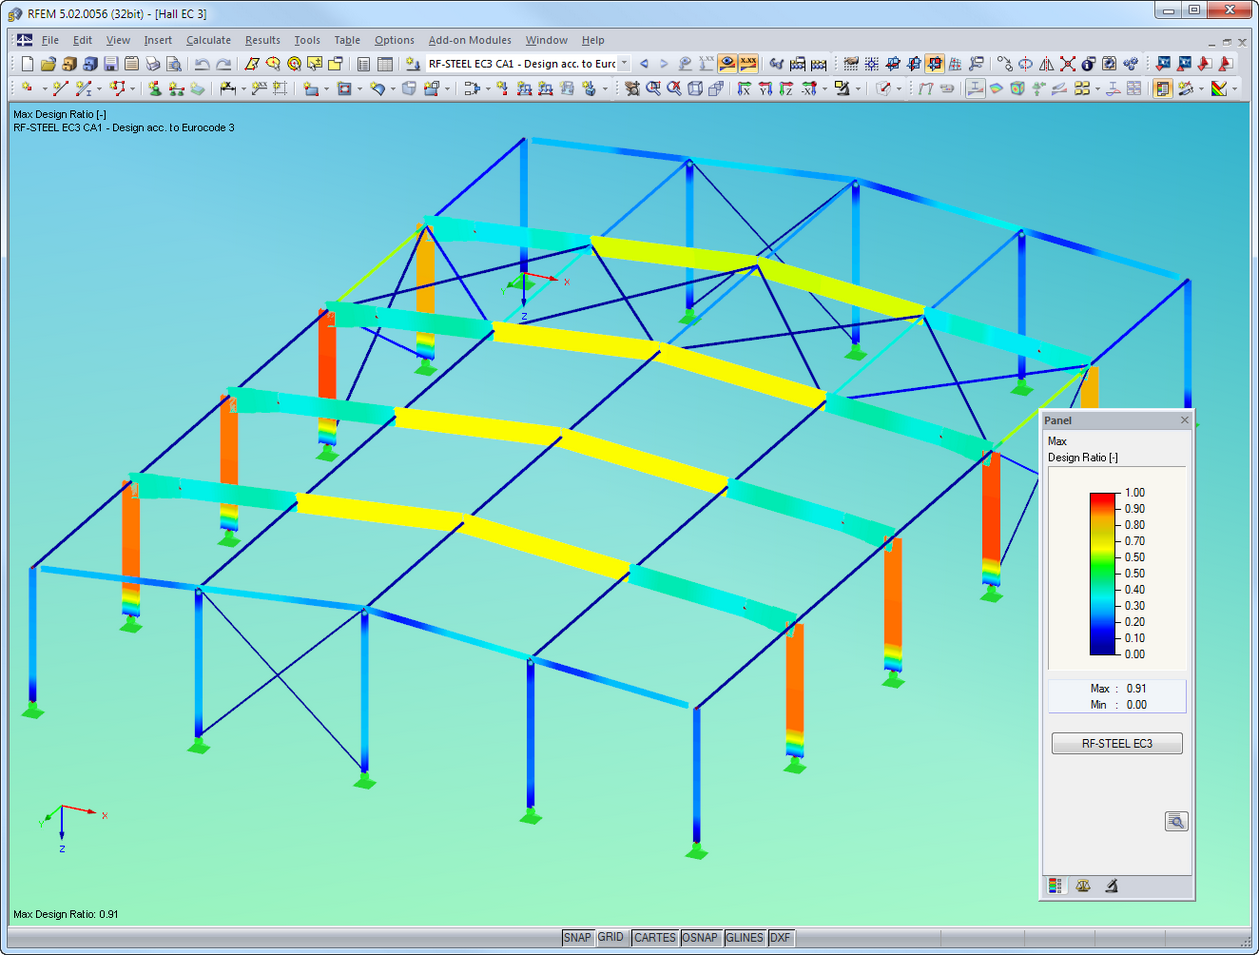 Design results of RF-STEEL EC3 visualized in RFEM